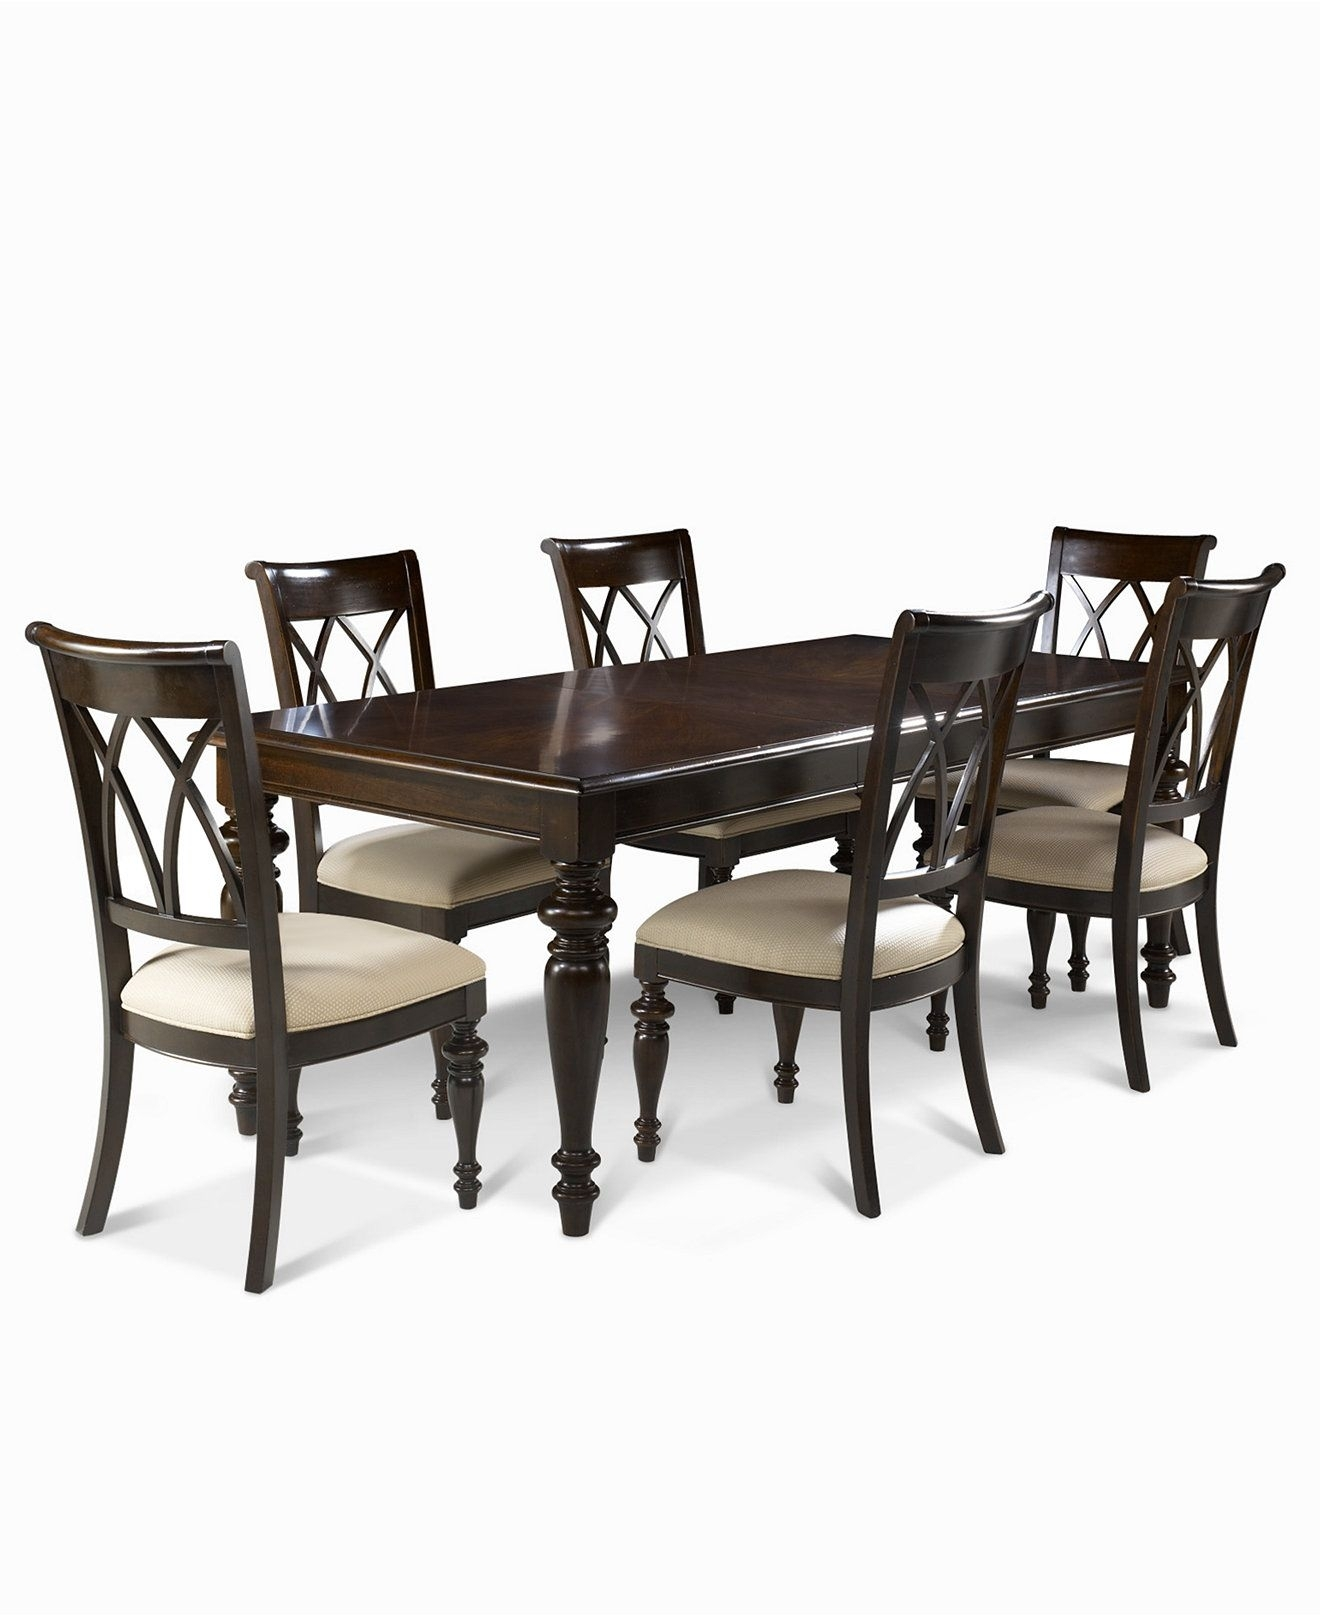 Bradford 7 Piece Dining Room Furniture Set (Table & 6 Side Chairs With Regard To 2018 Bradford Dining Tables (View 15 of 20)